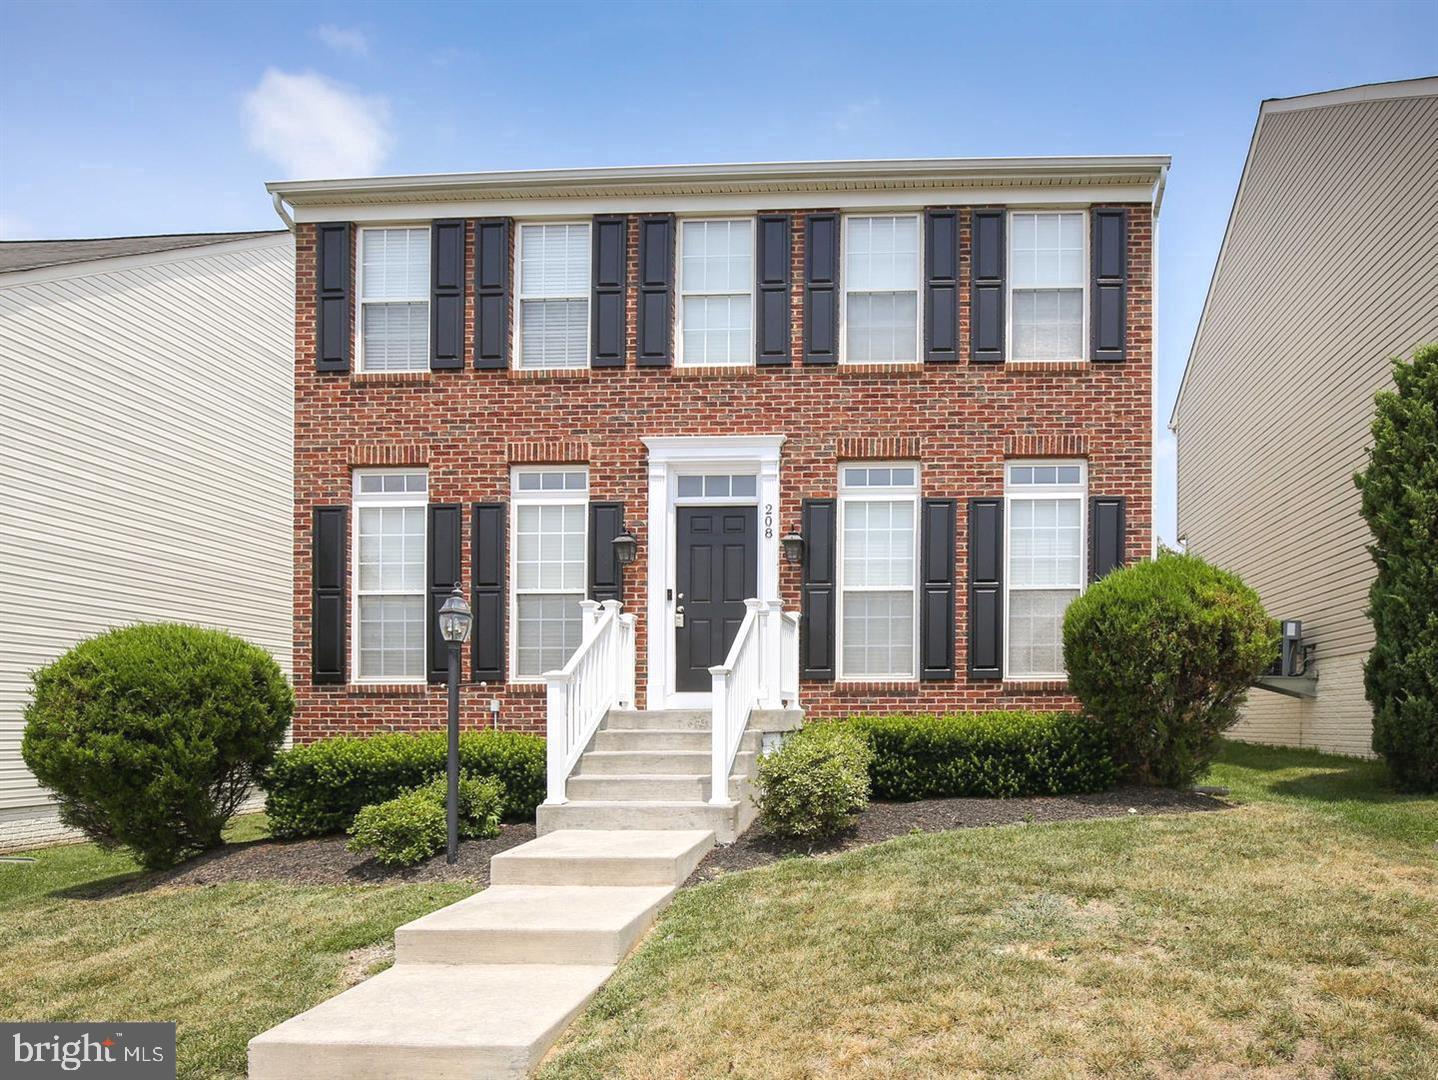 Check out this brick beauty in sought-after Stephens Landing!  Almost 4000 finished sq ft!  This is